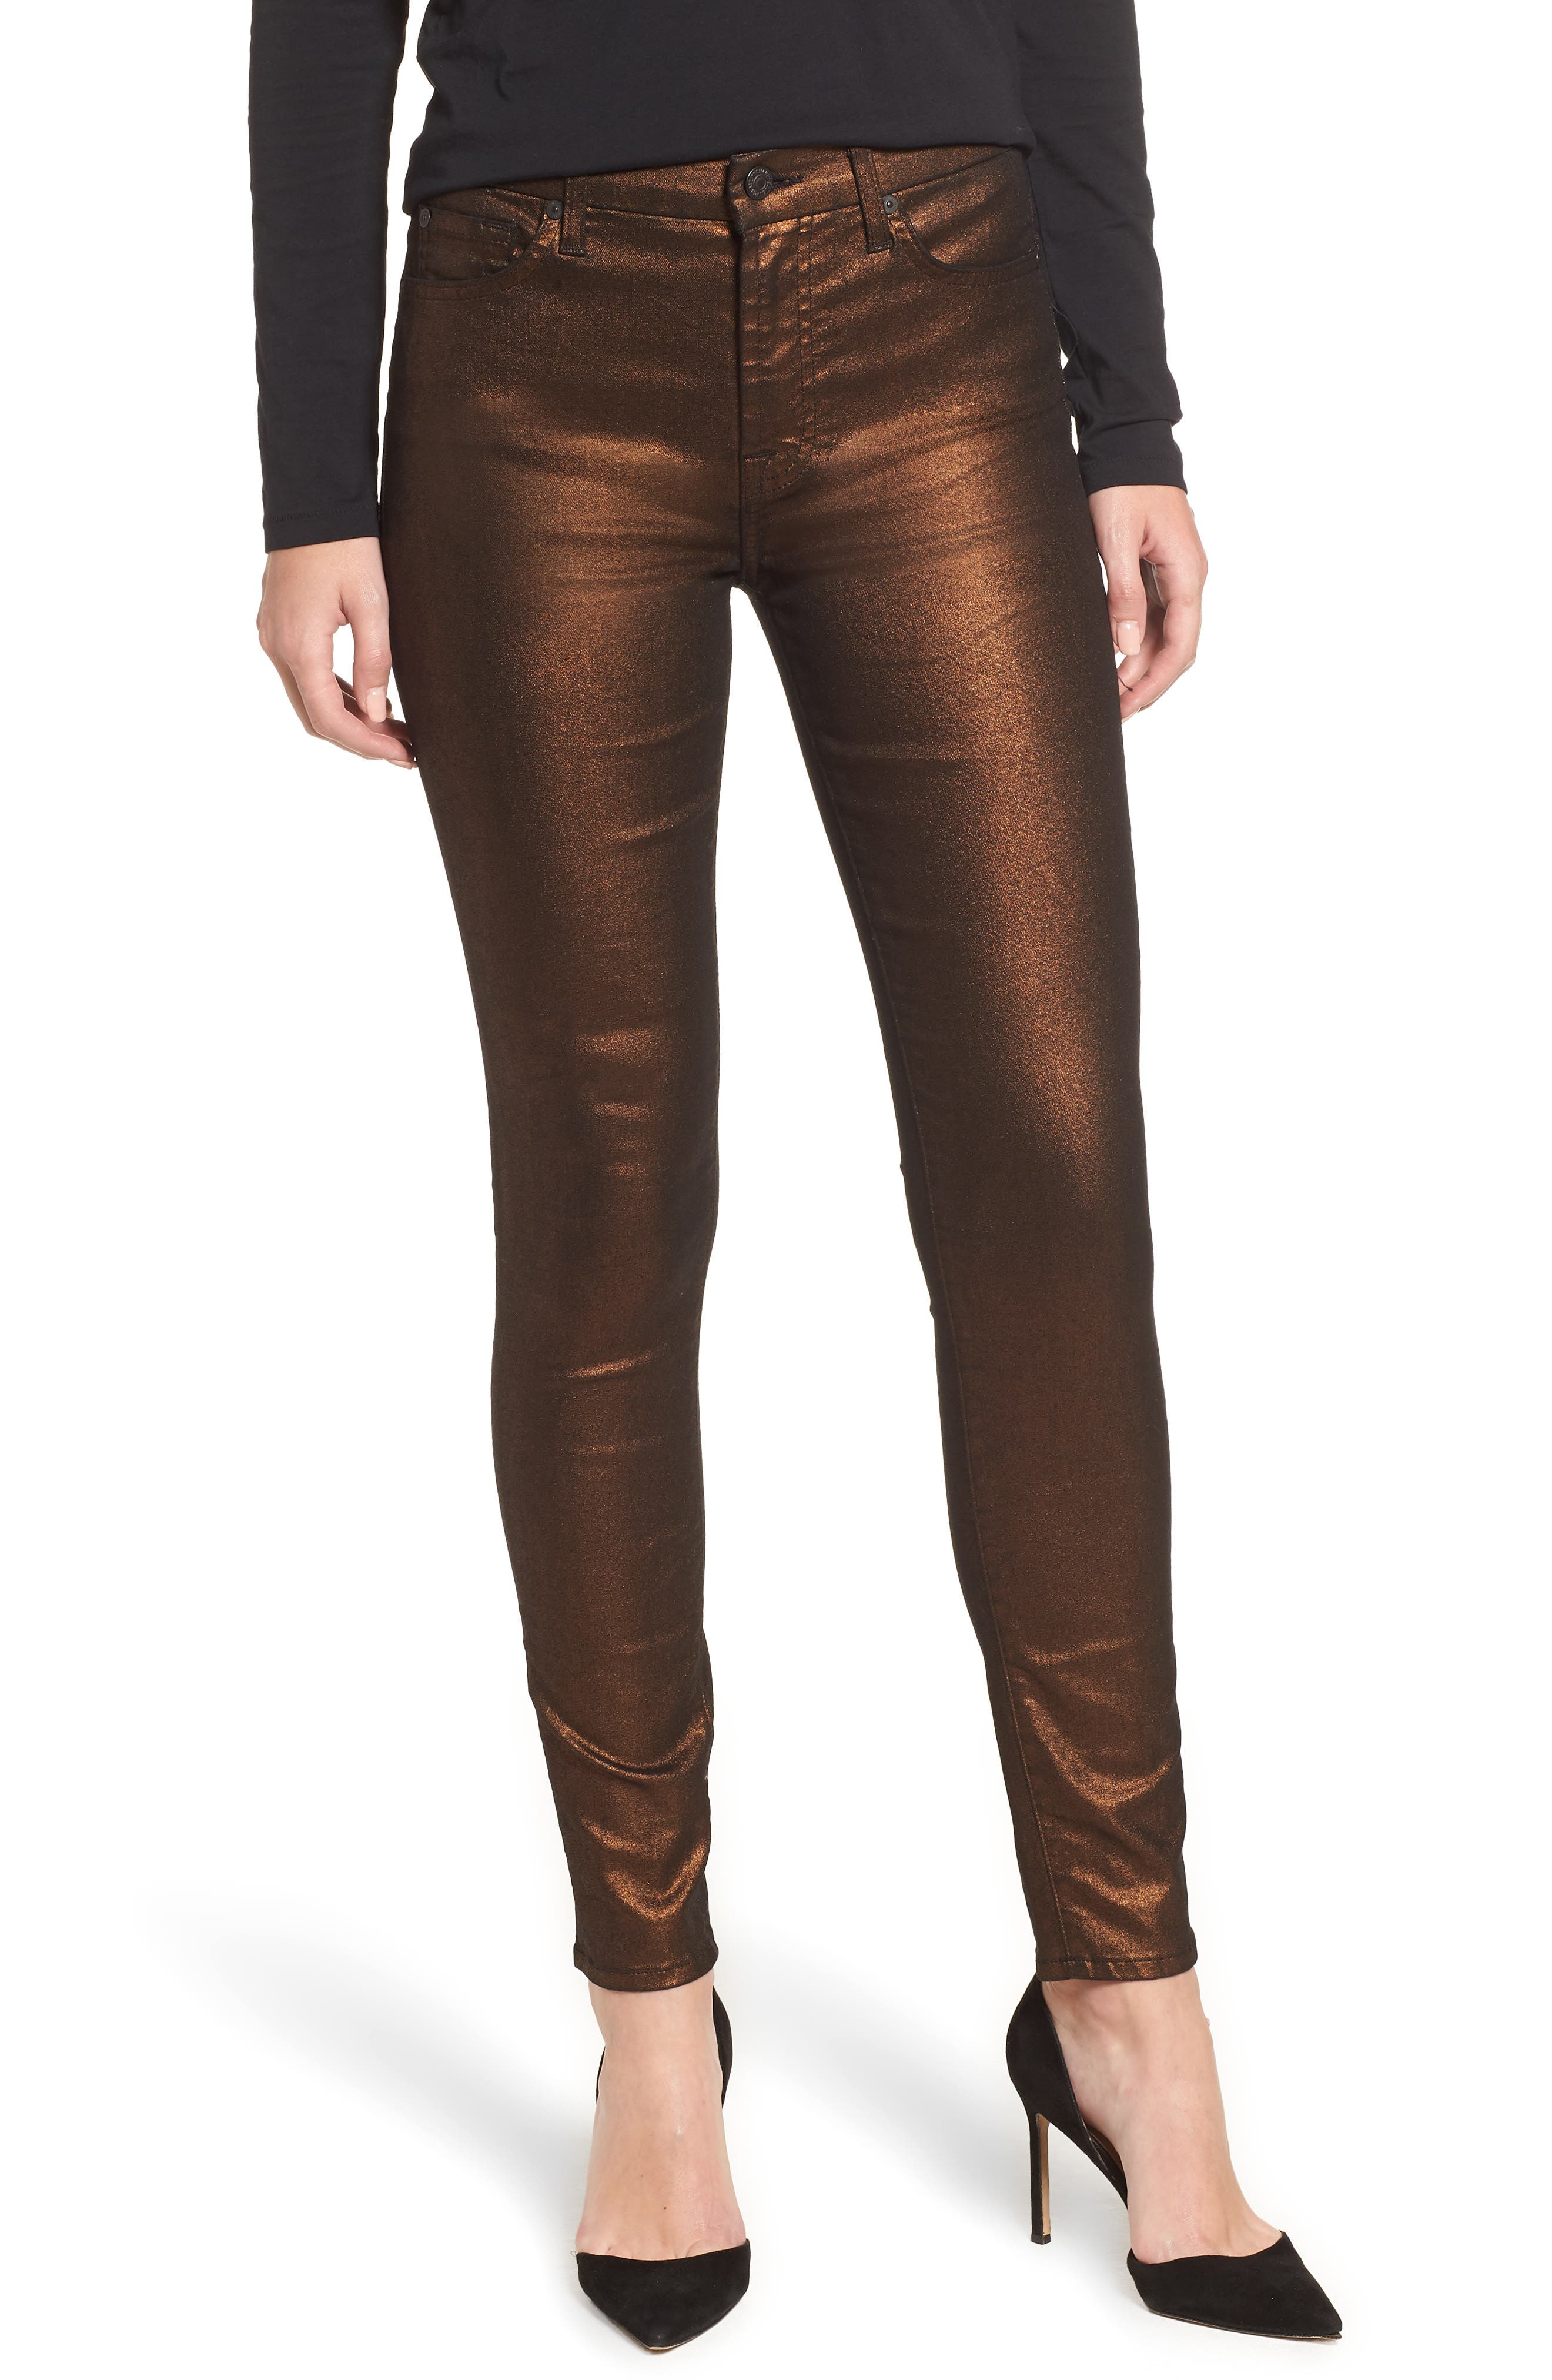 7 FOR ALL MANKIND<SUP>®</SUP>, Metallic Ankle Skinny Jeans, Main thumbnail 1, color, 220